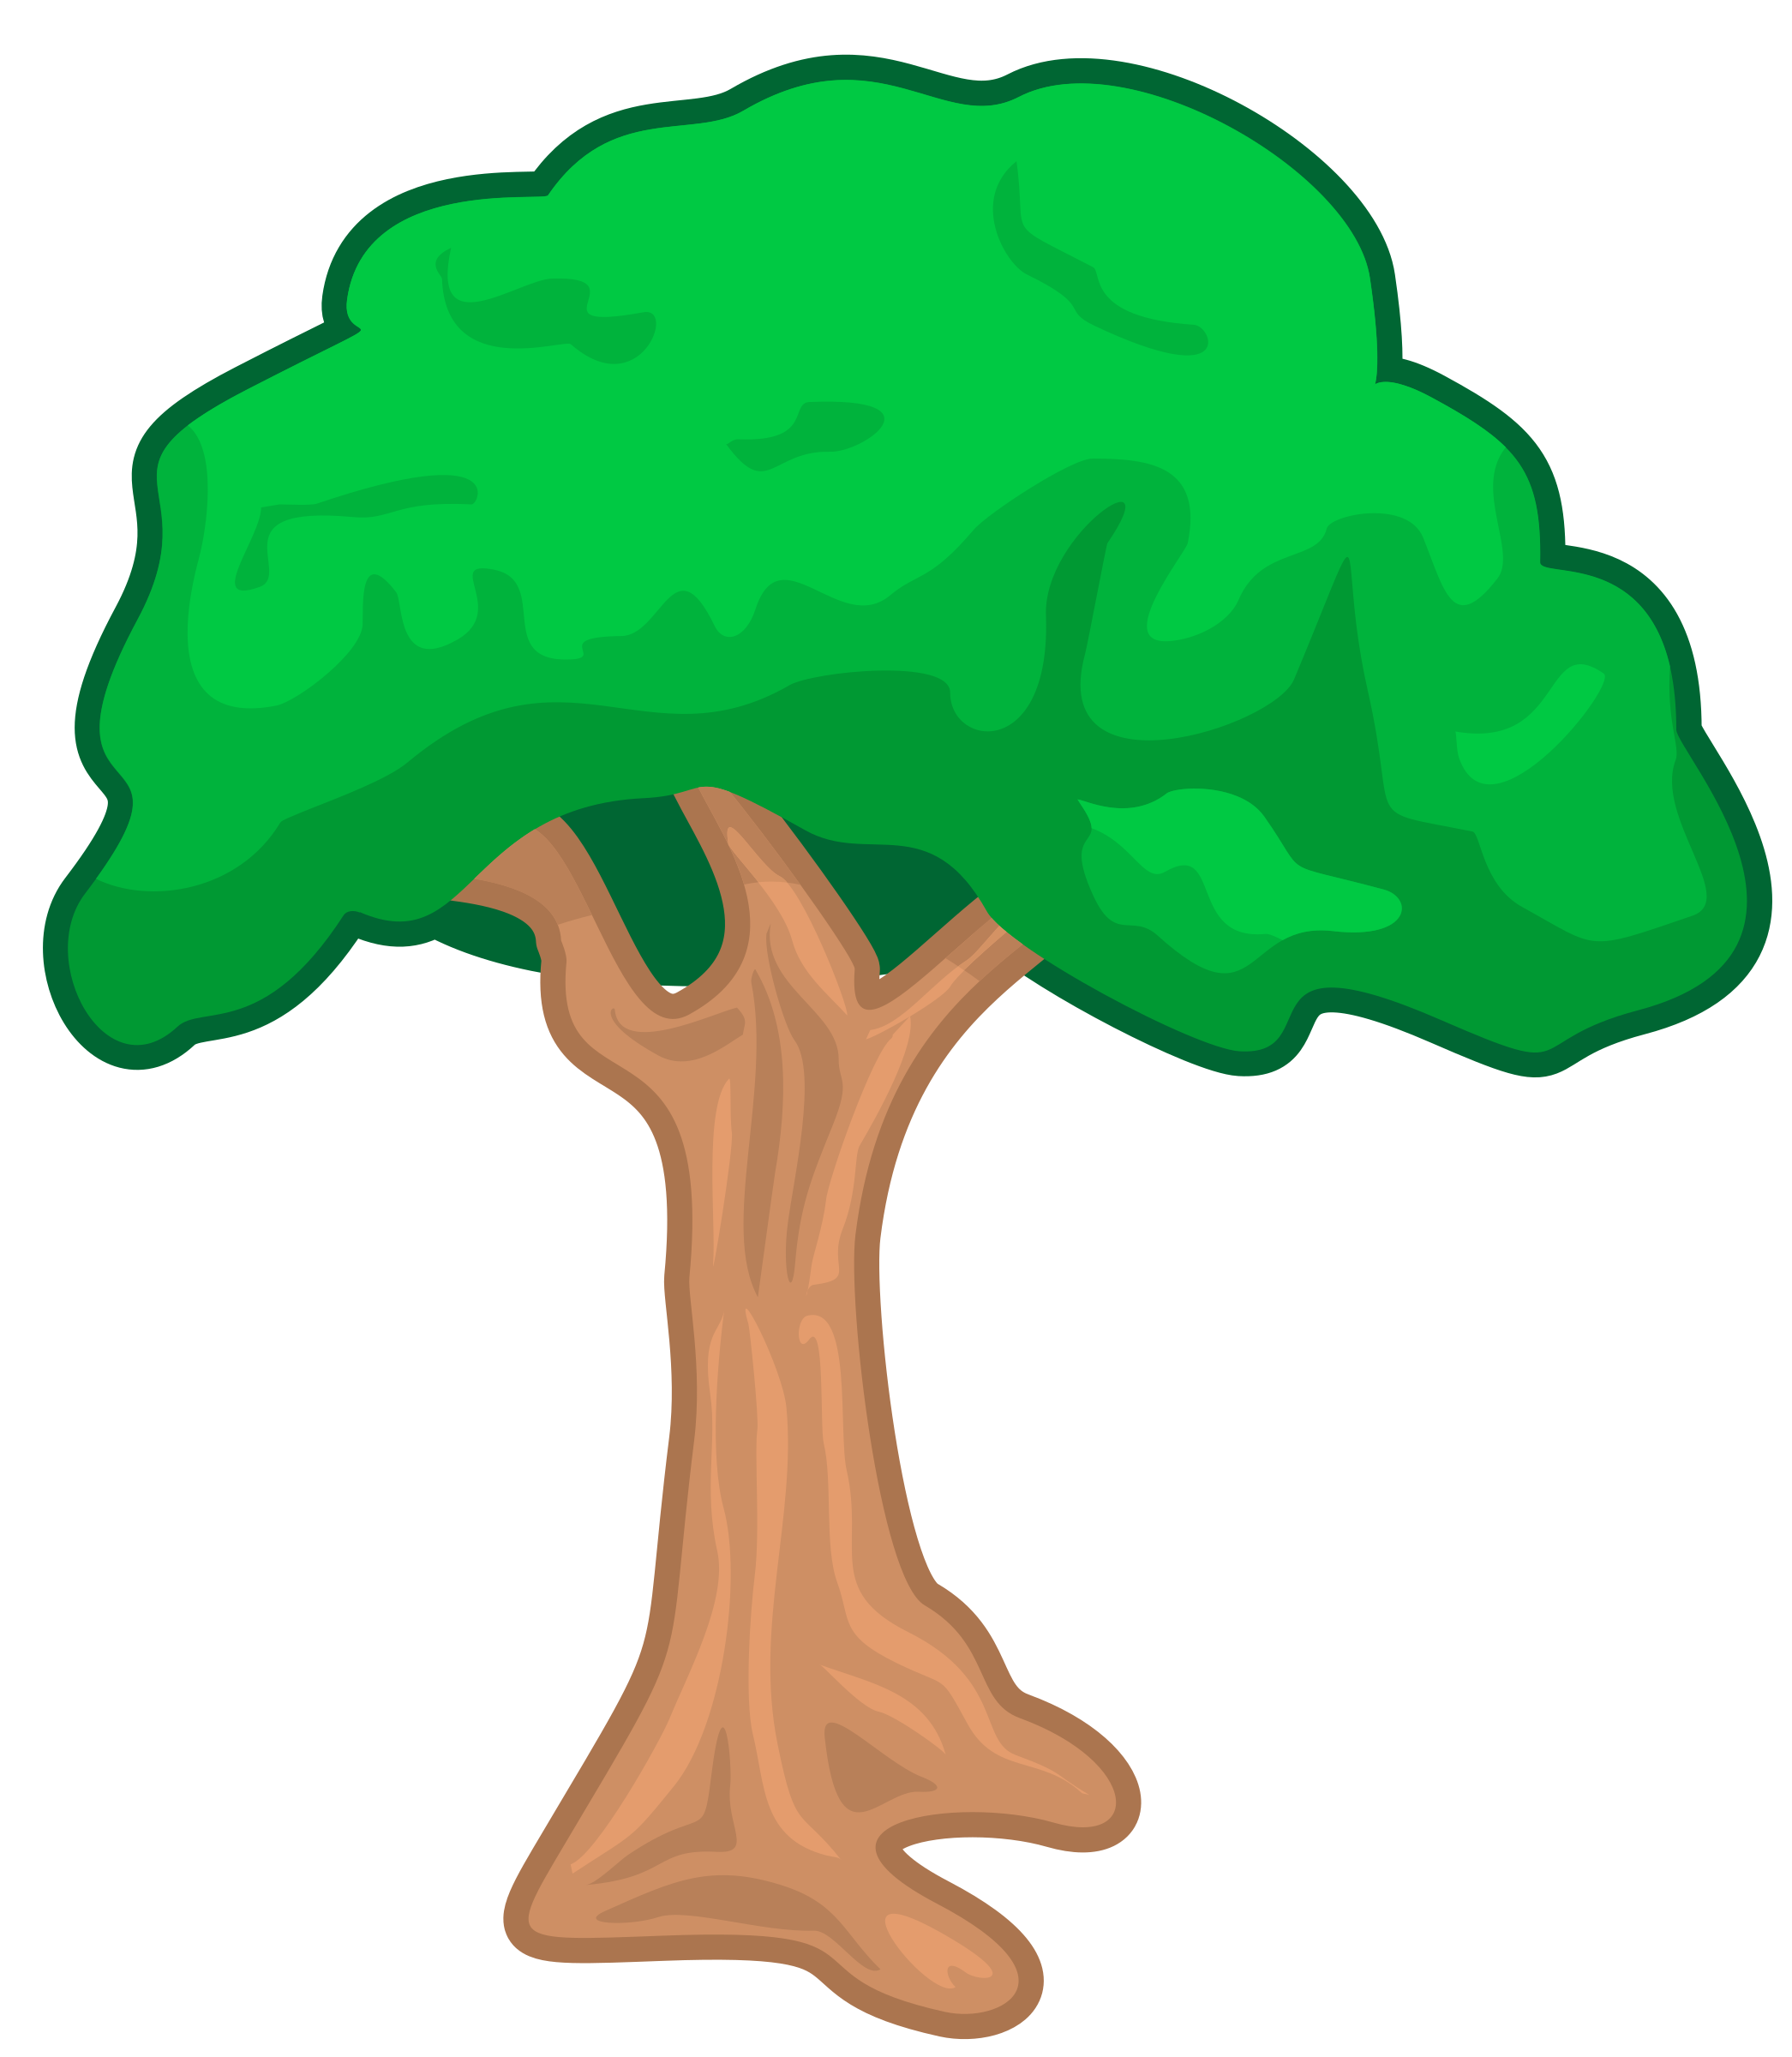 Orange tree clipart image Clipart - trace tree image